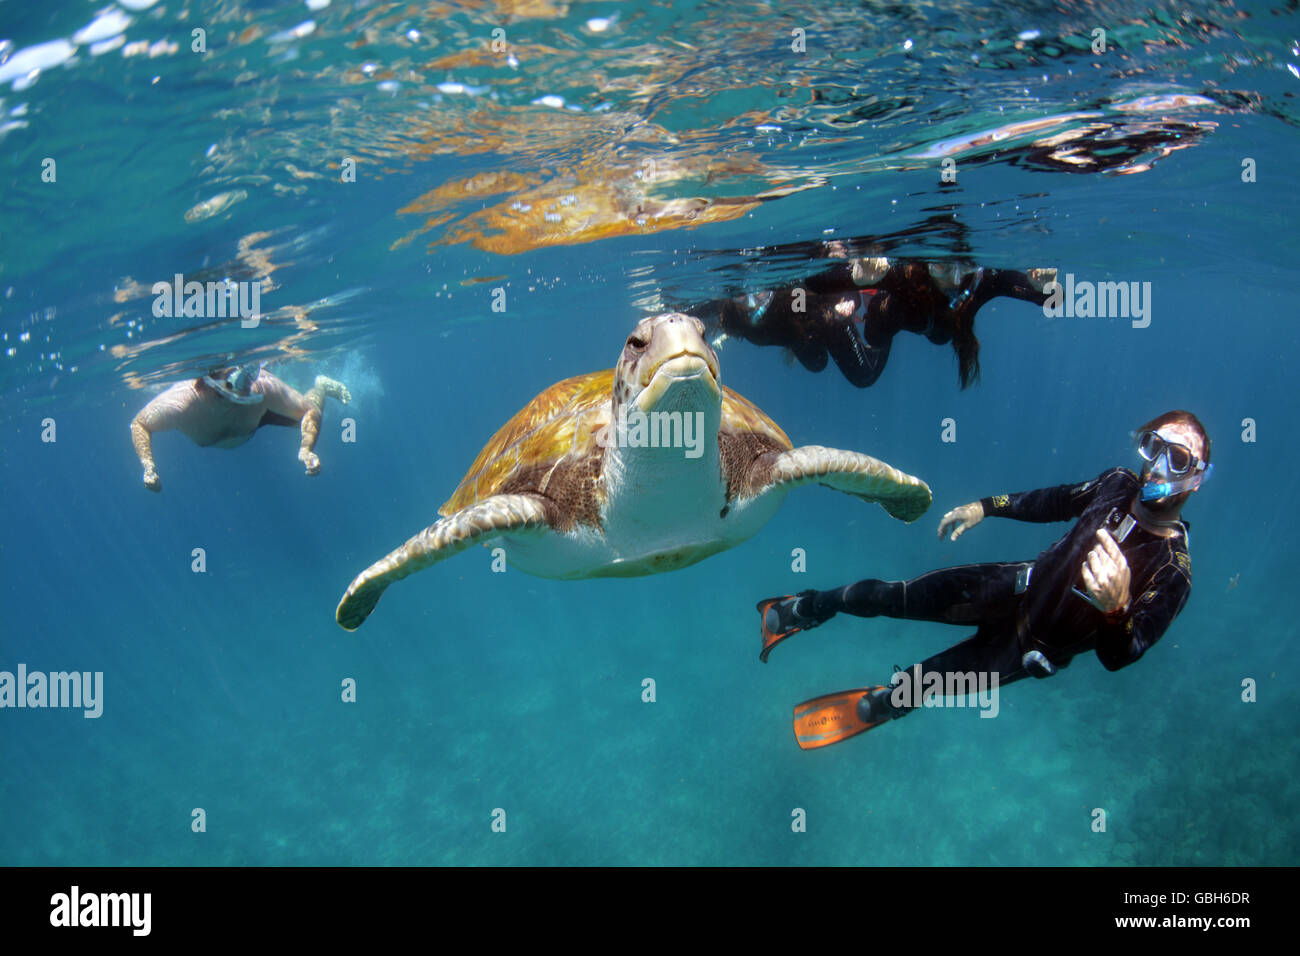 Snorkeling with green sea turtle in Tenerife, Canary Islands - Stock Image